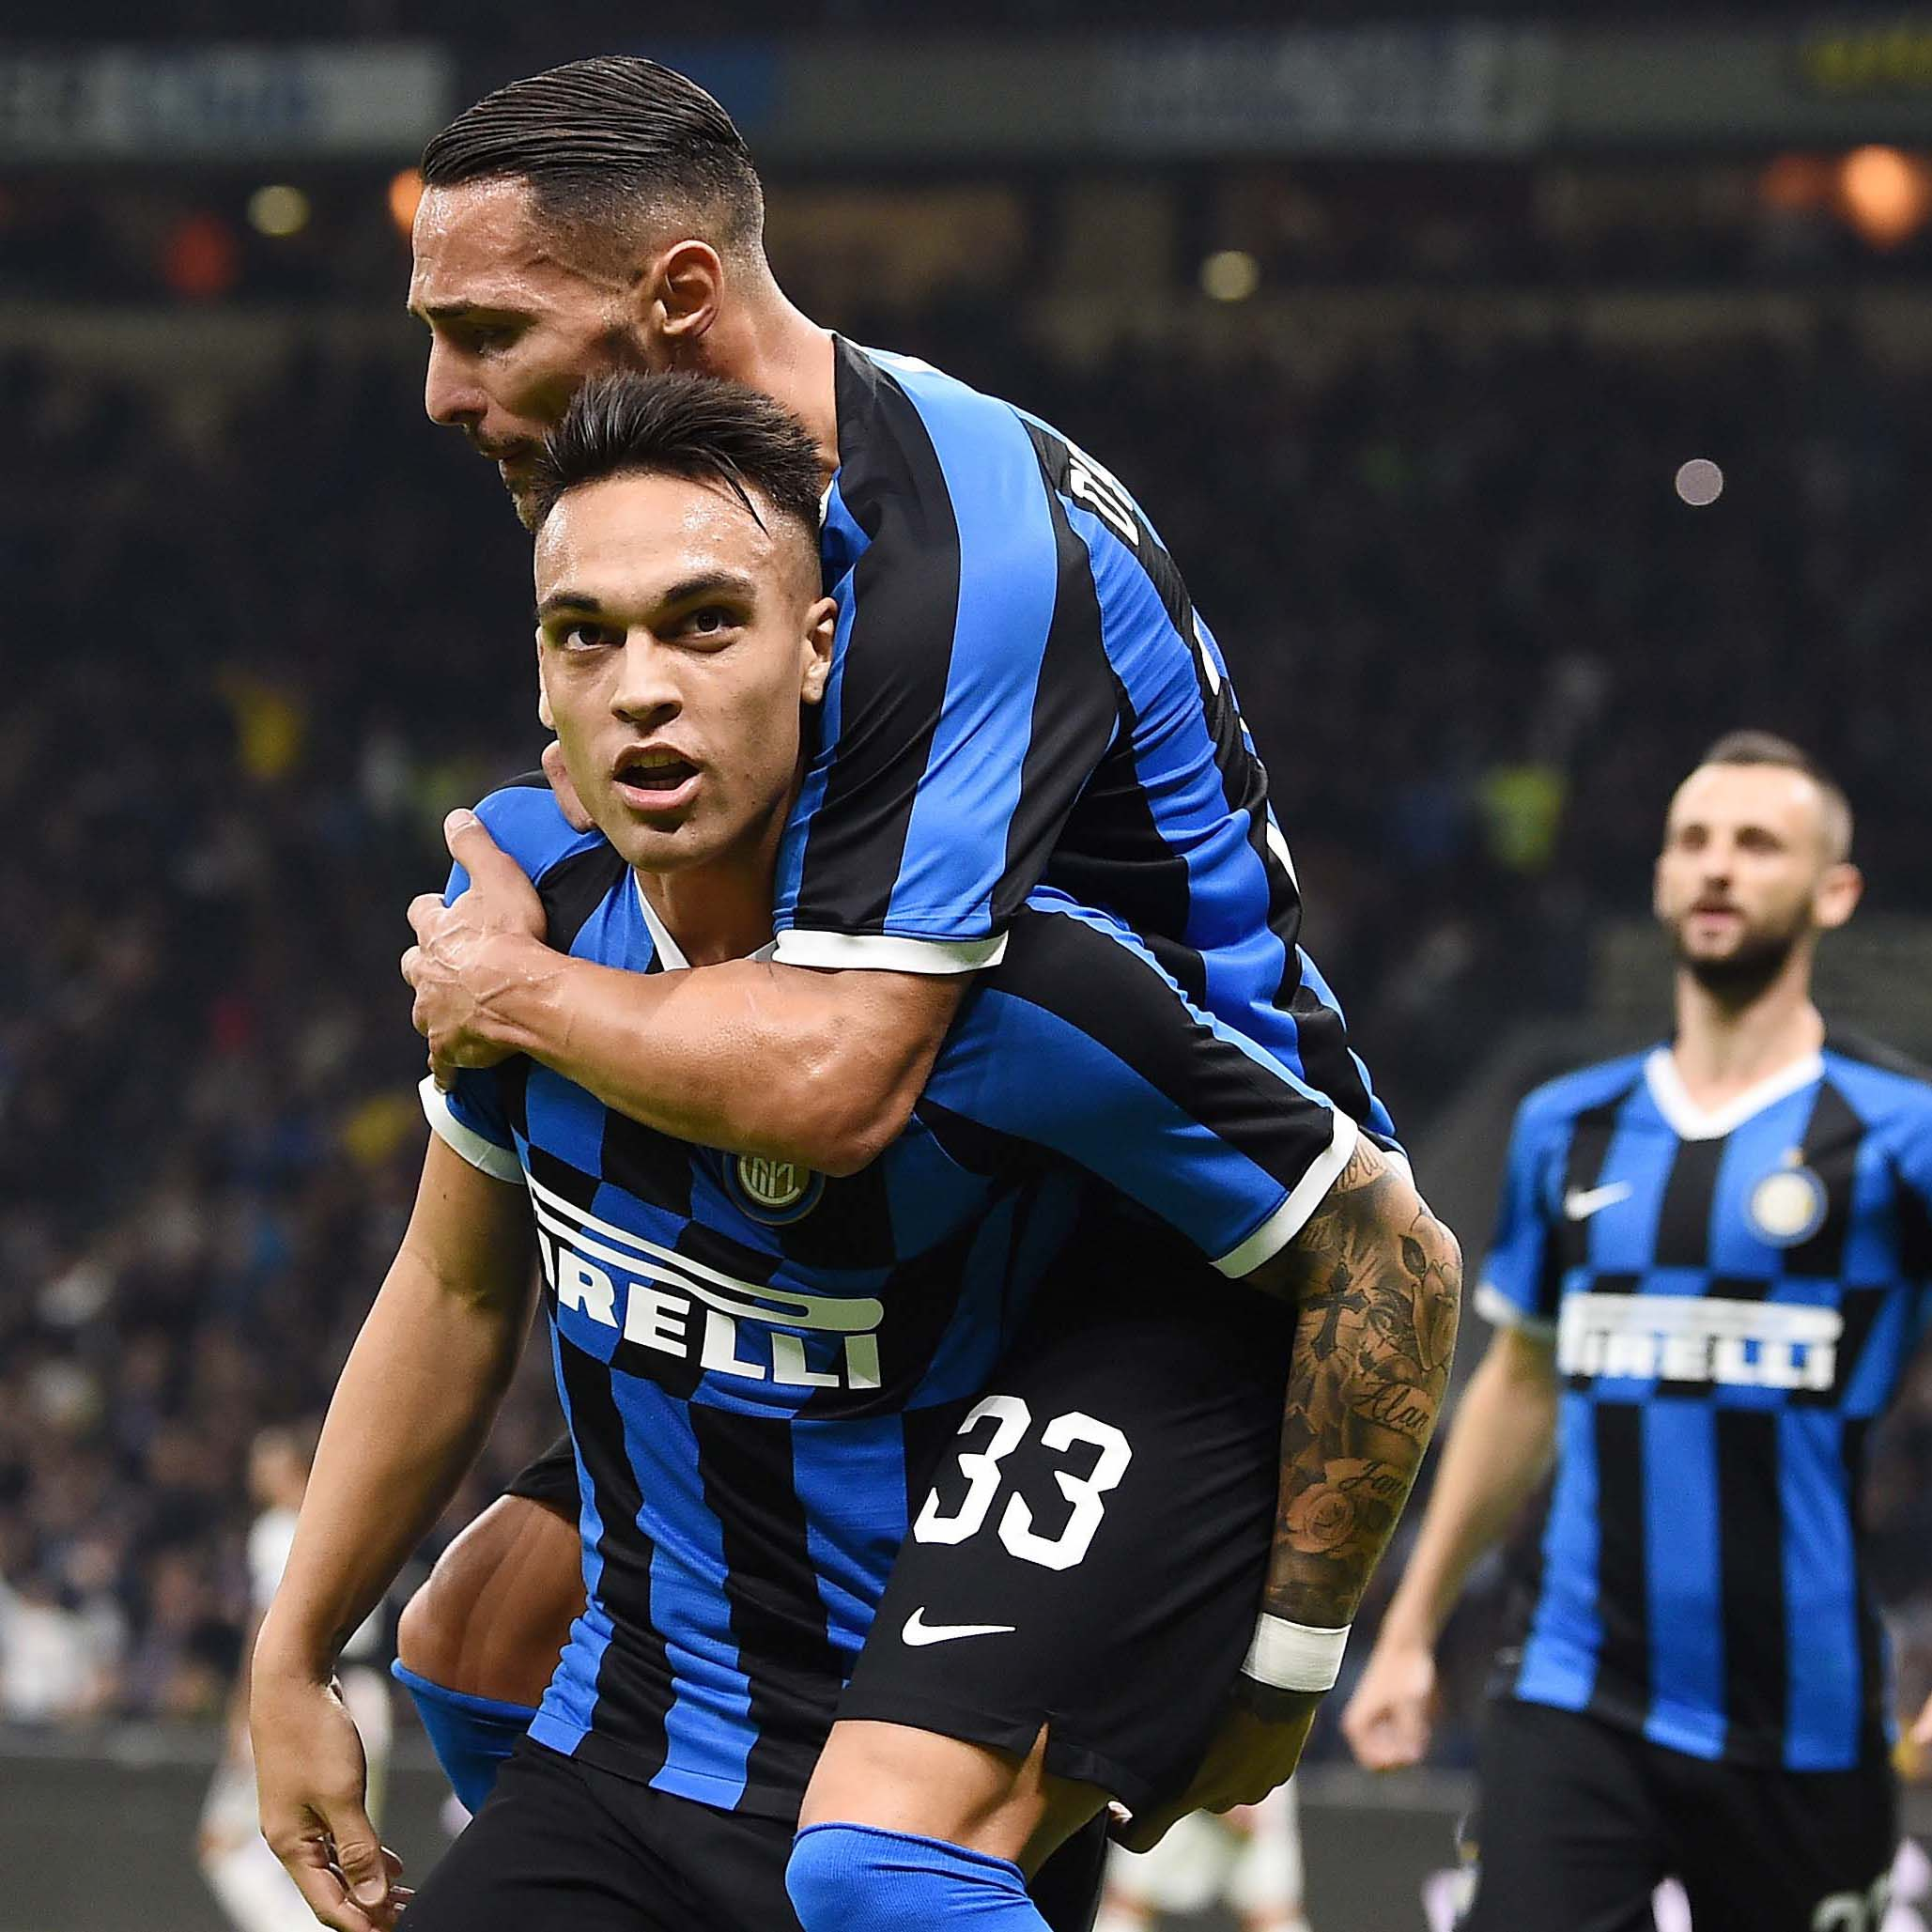 Inter Milan - SSC Napoli (Sun. 17 May 2020)